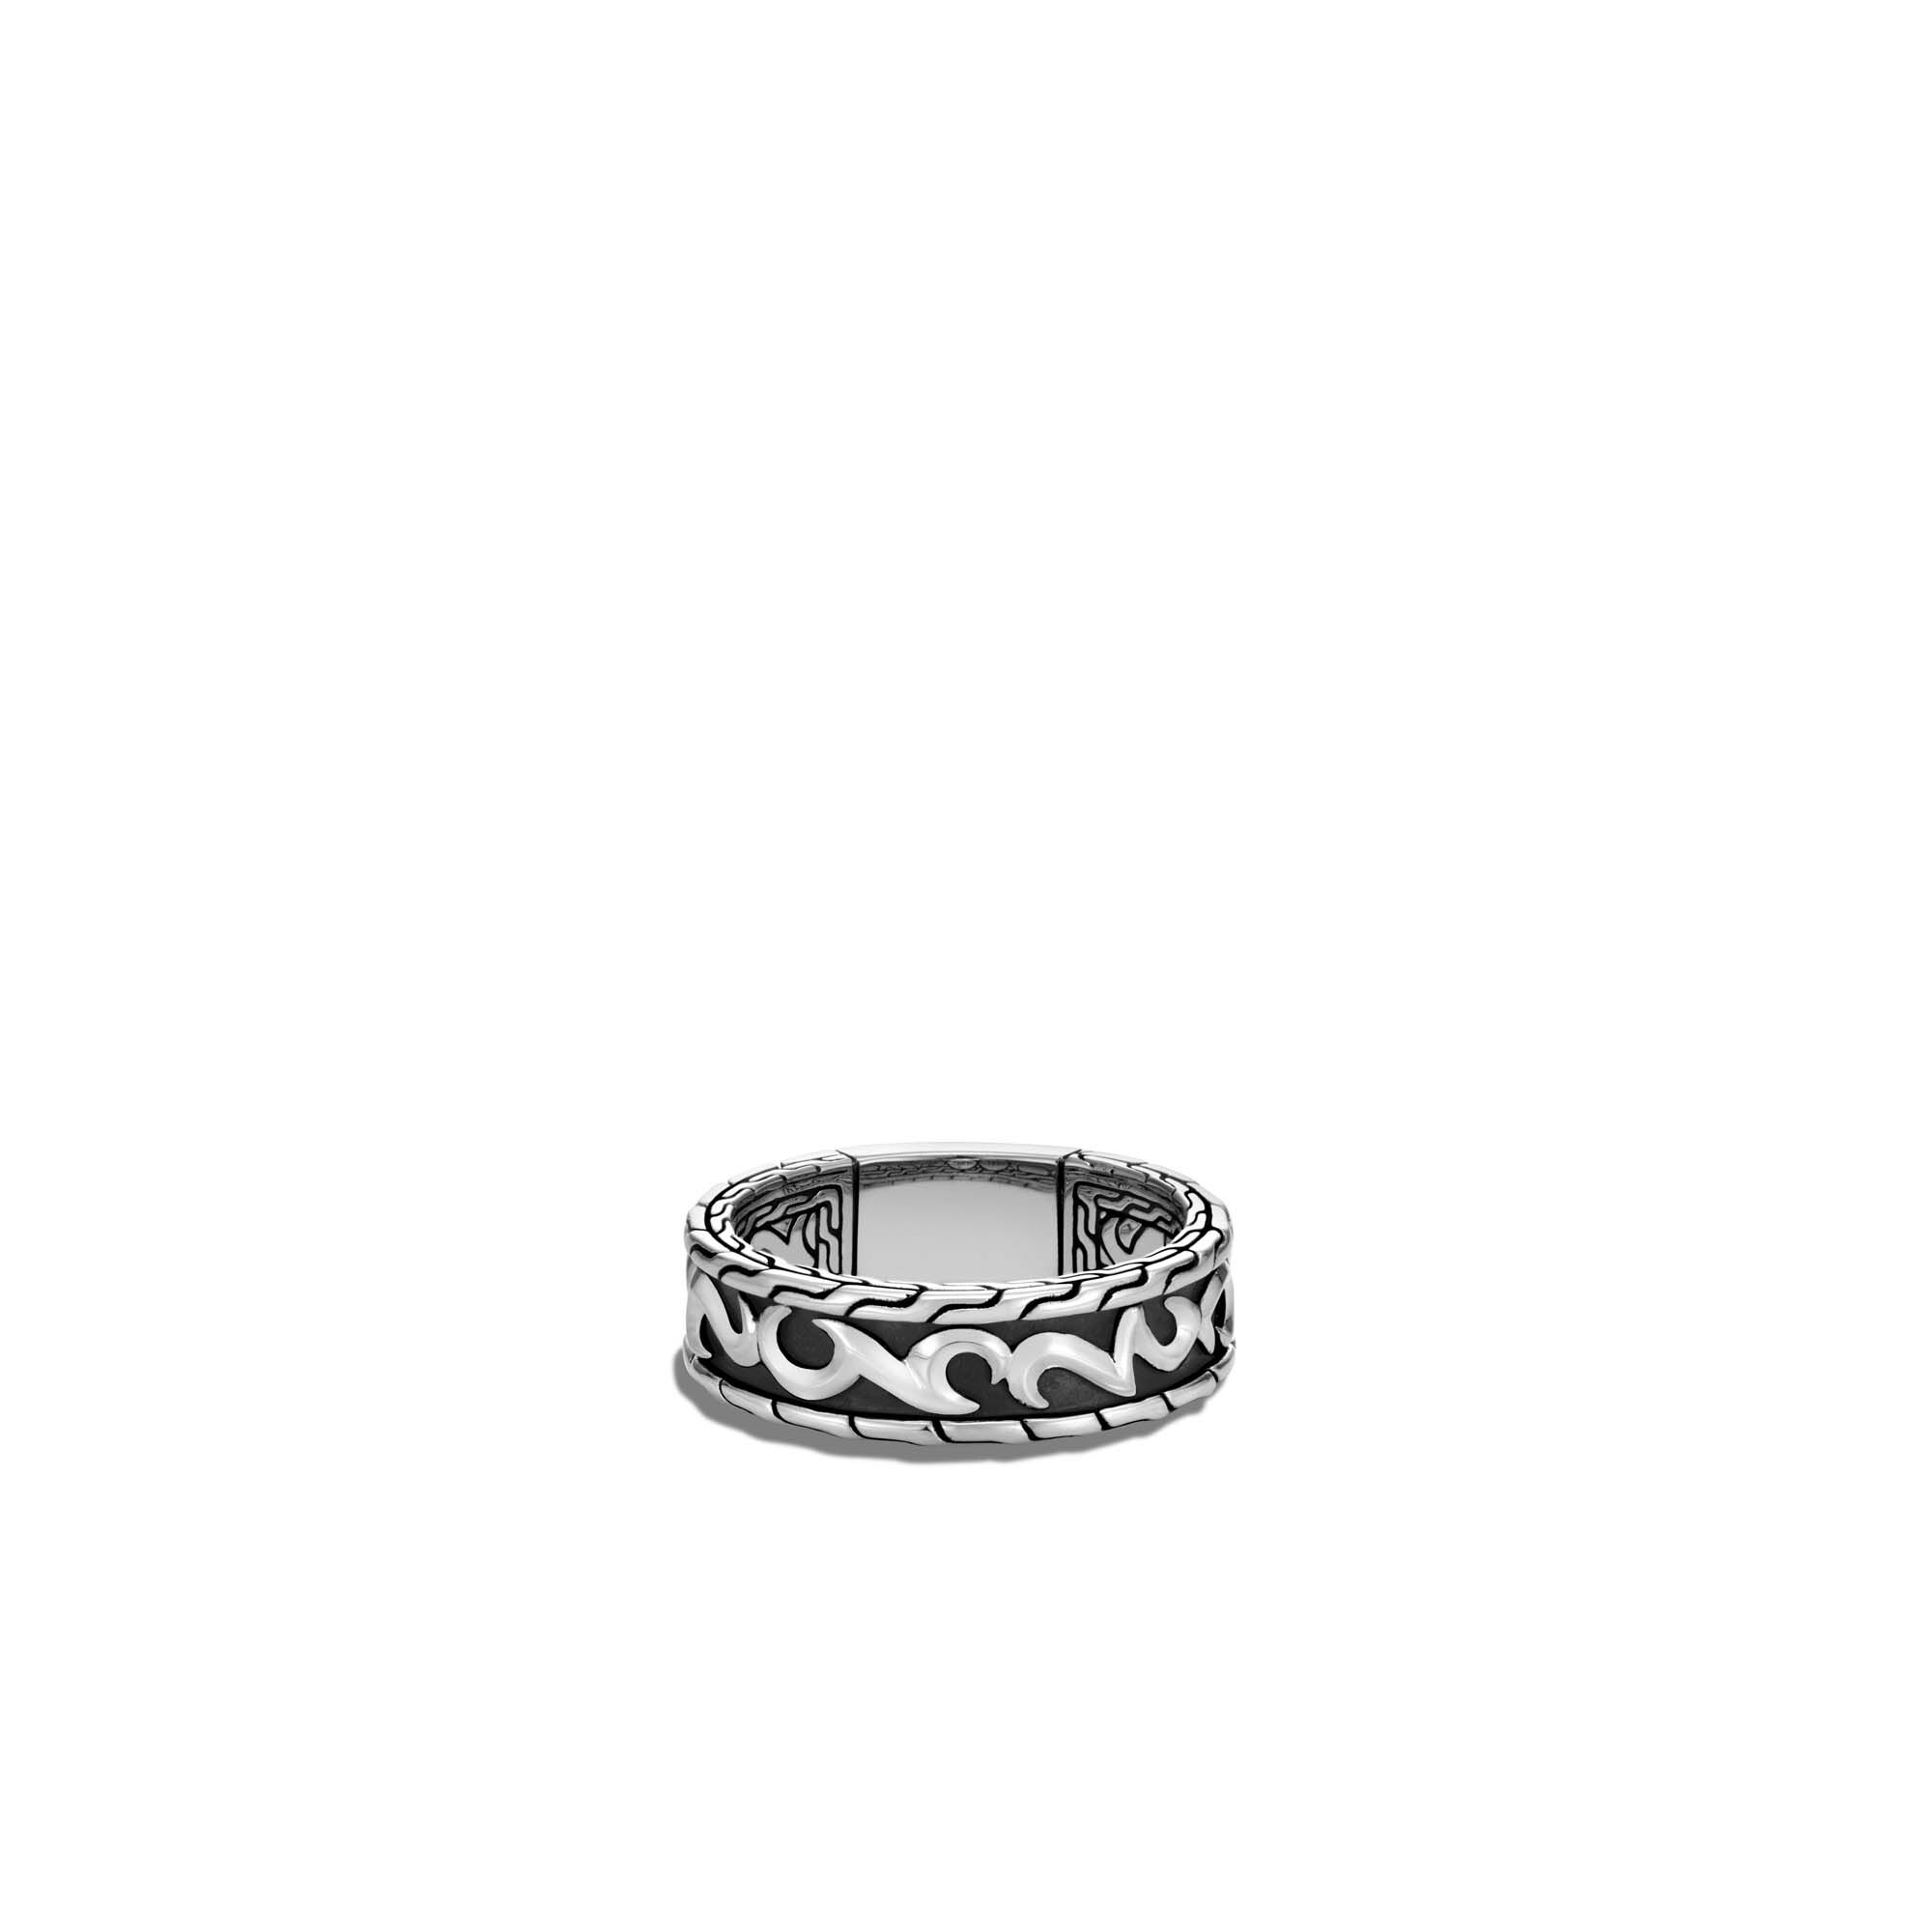 Classic Chain Keris Dagger 7MM Band Ring in Silver, , large